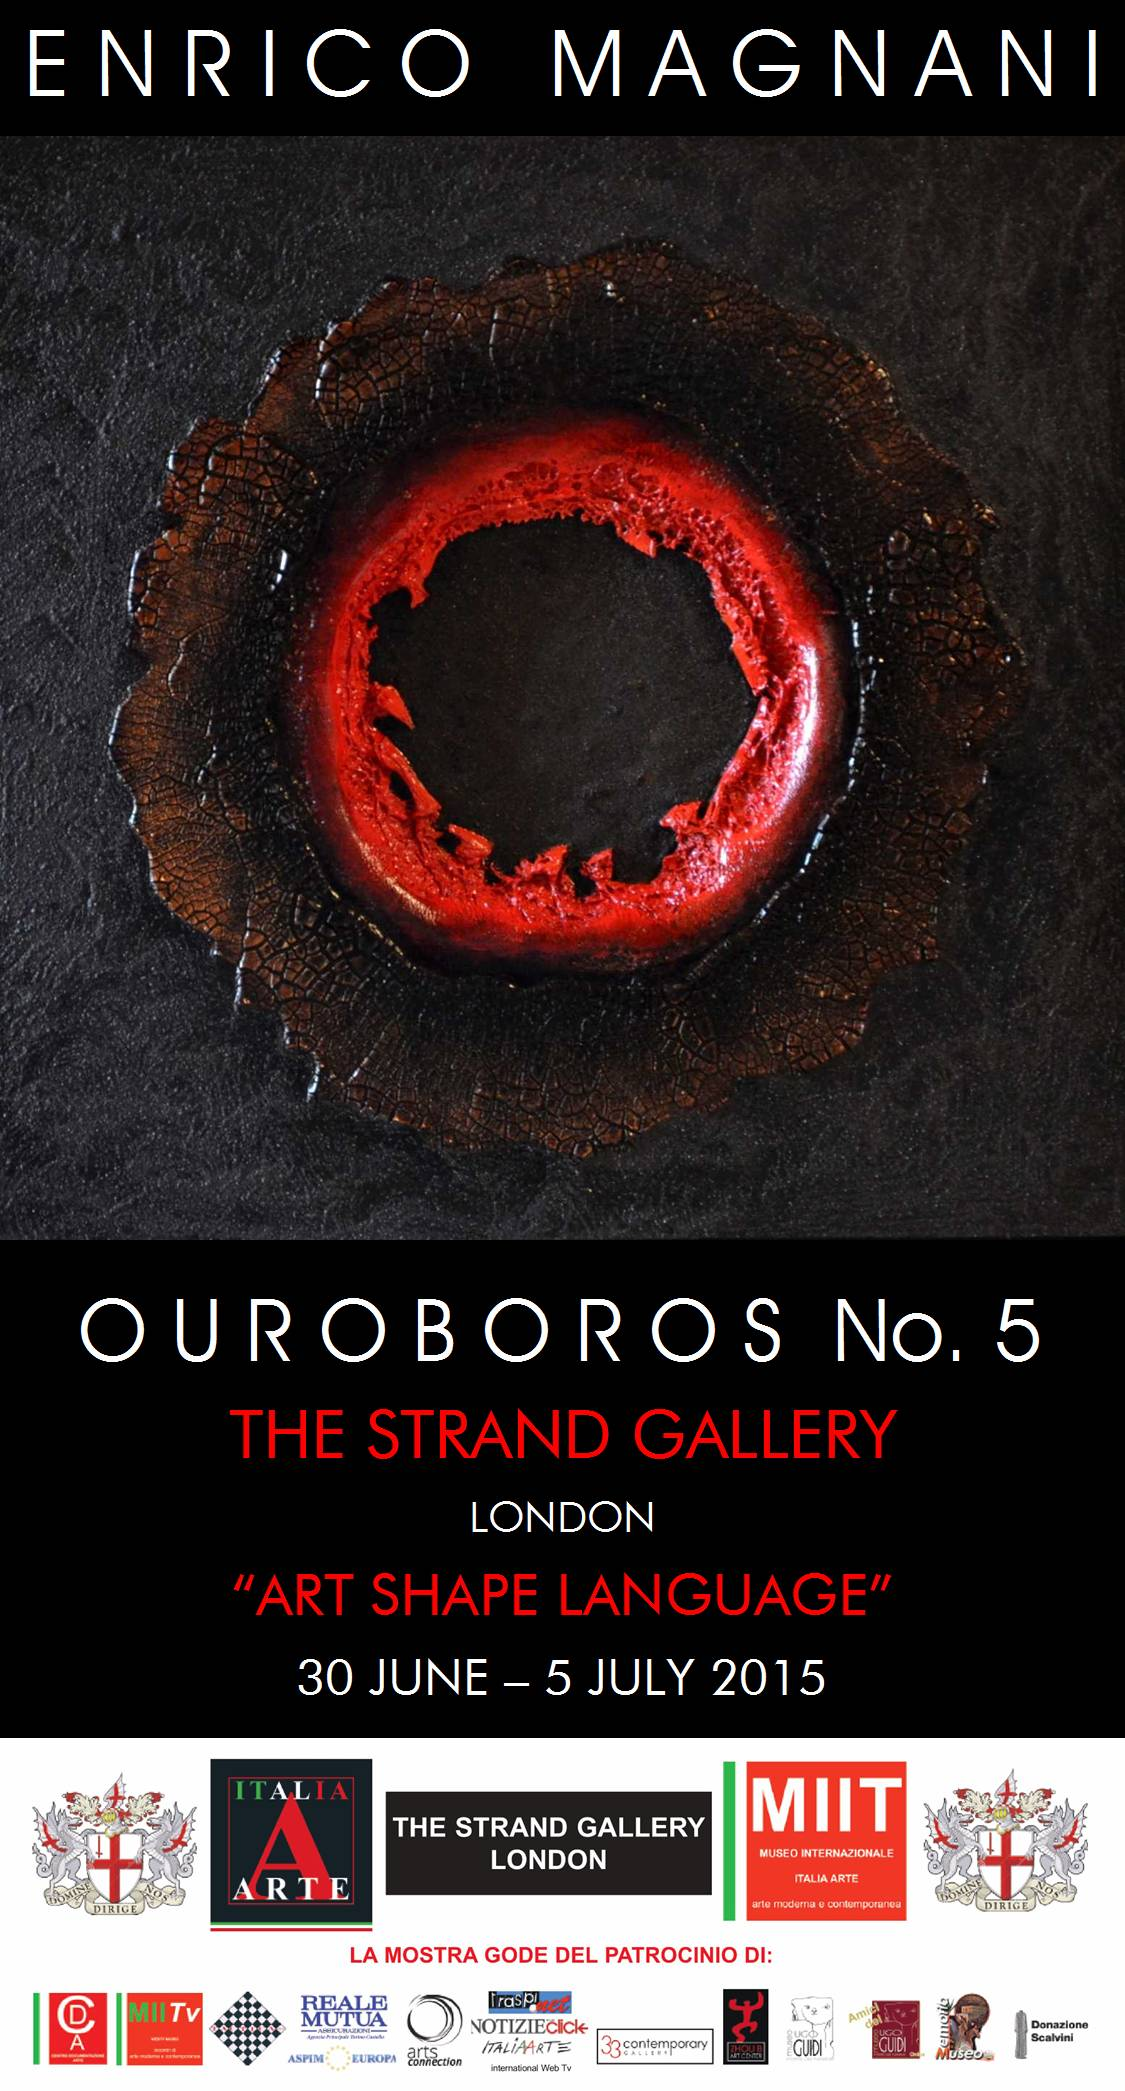 Enrico Magnani, OUROBOROS, art, london, londra, gallery, shape, language